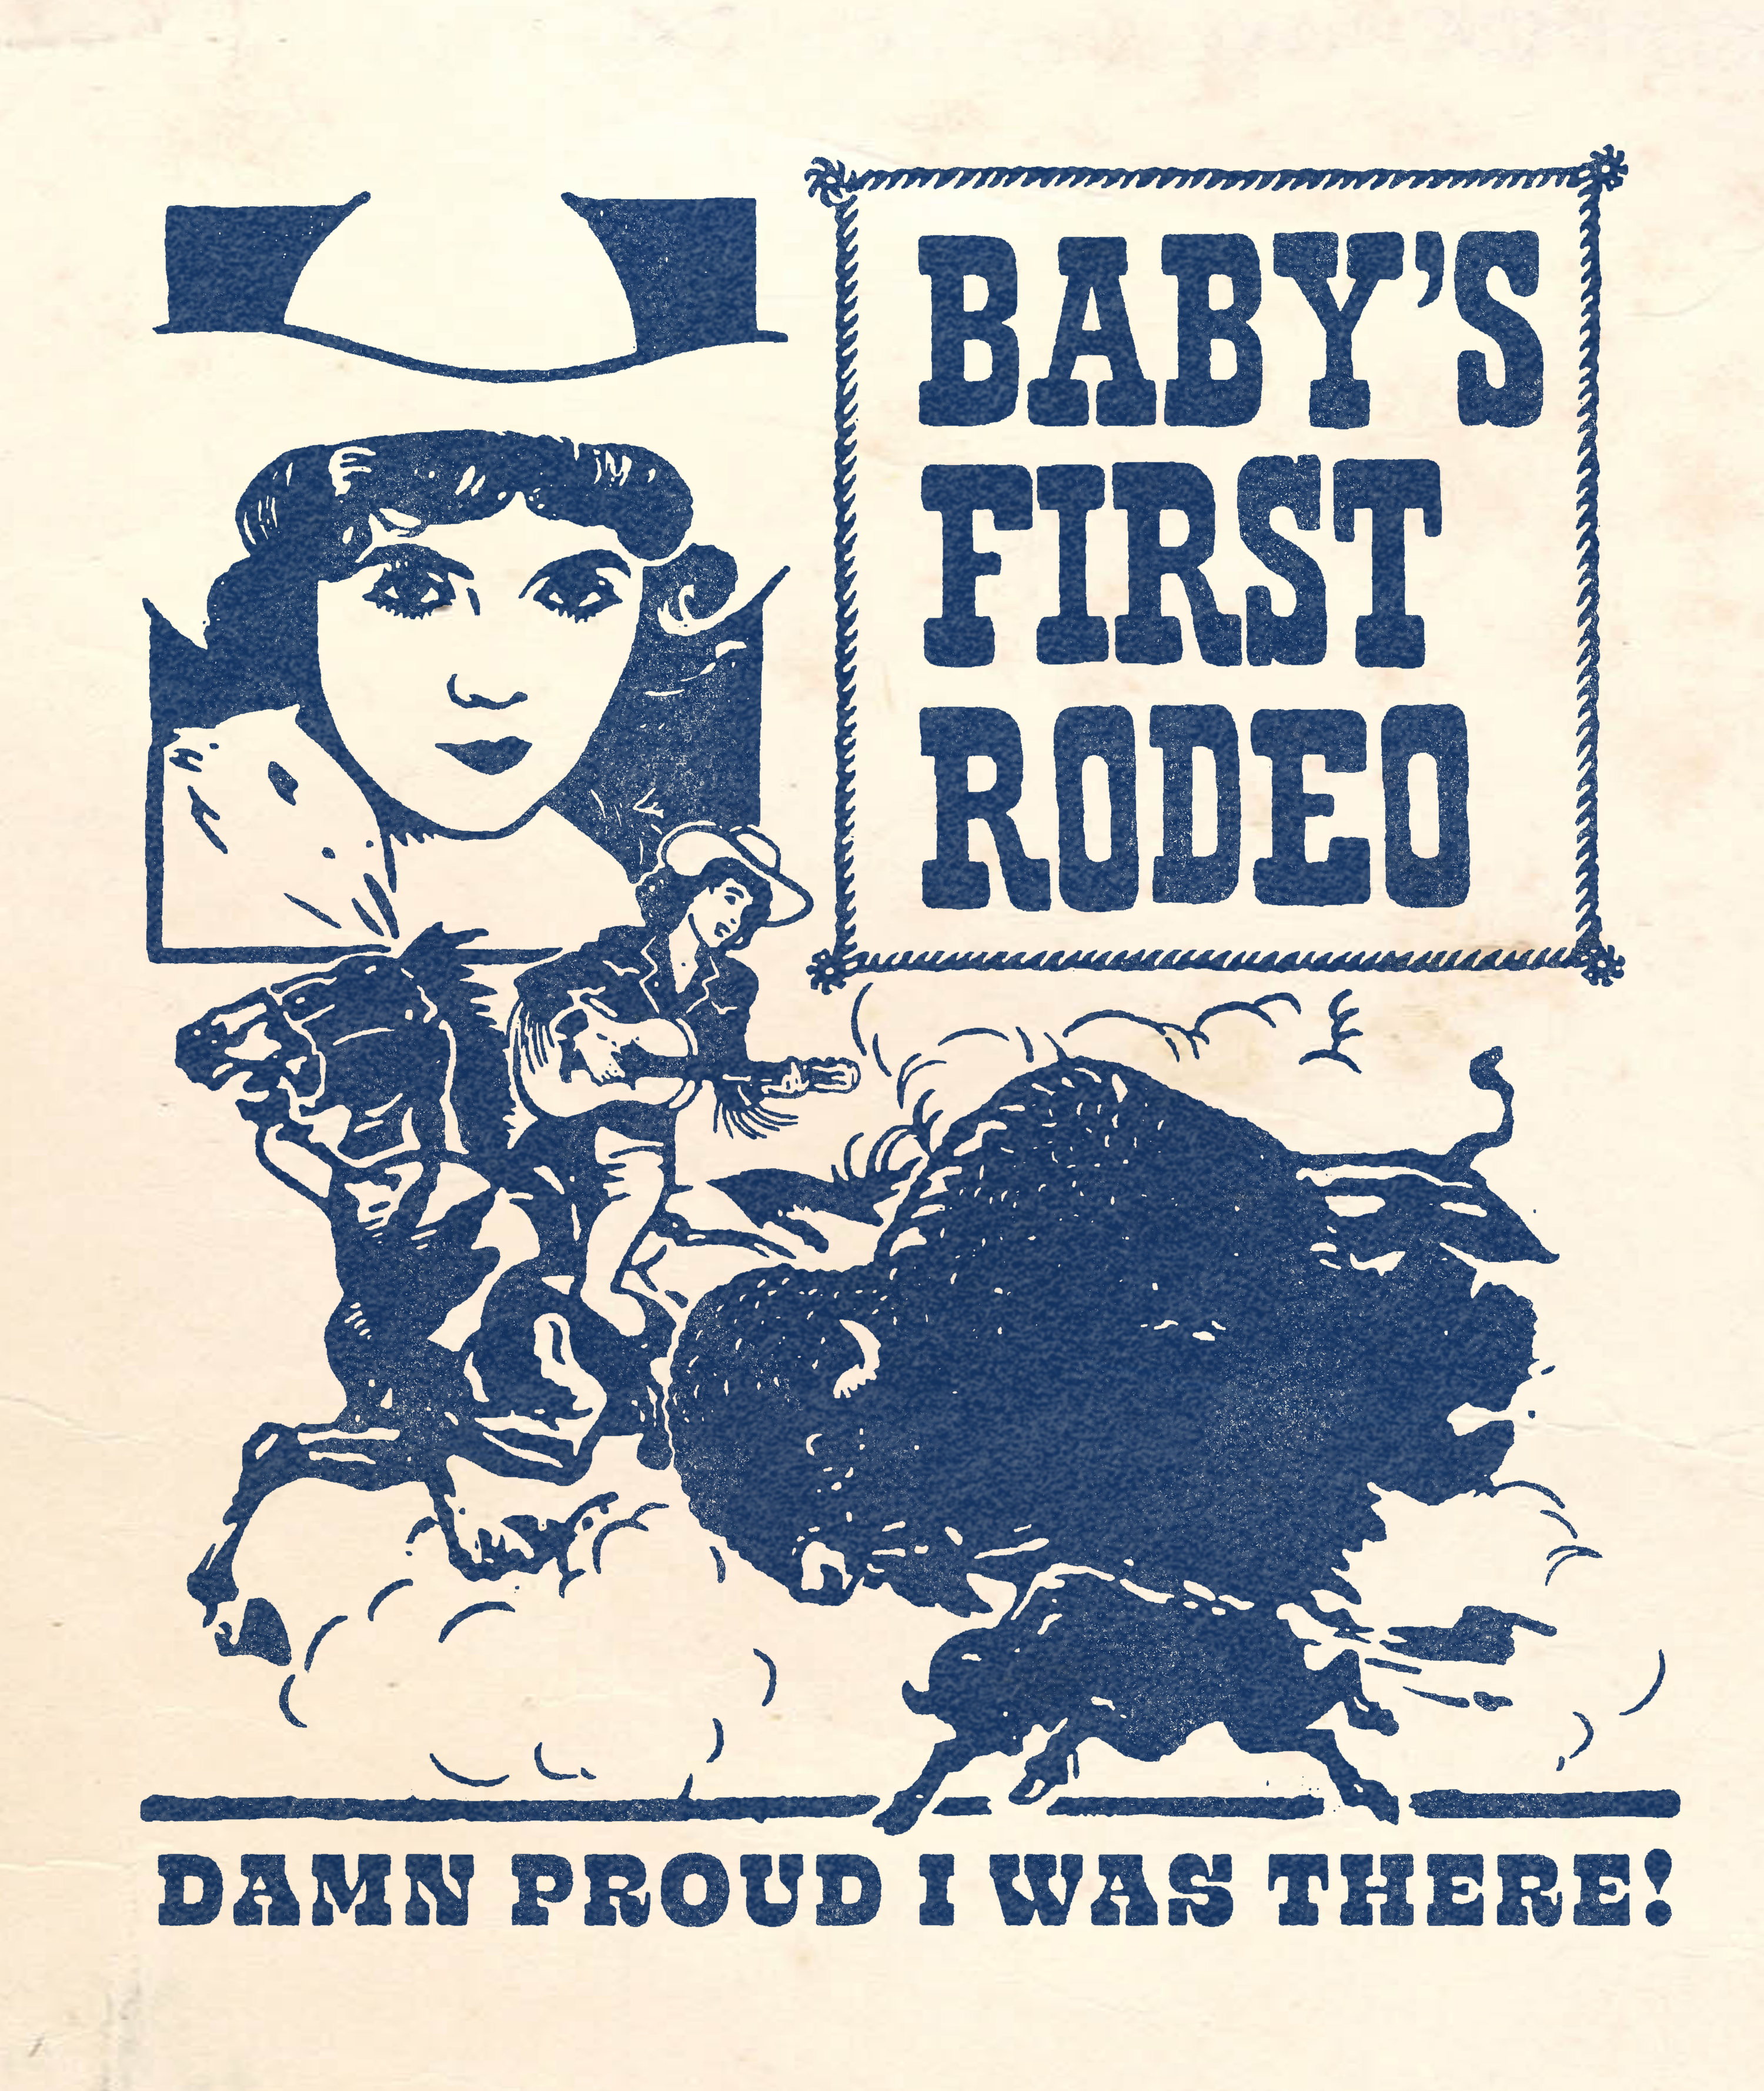 Baby's First Rodeo